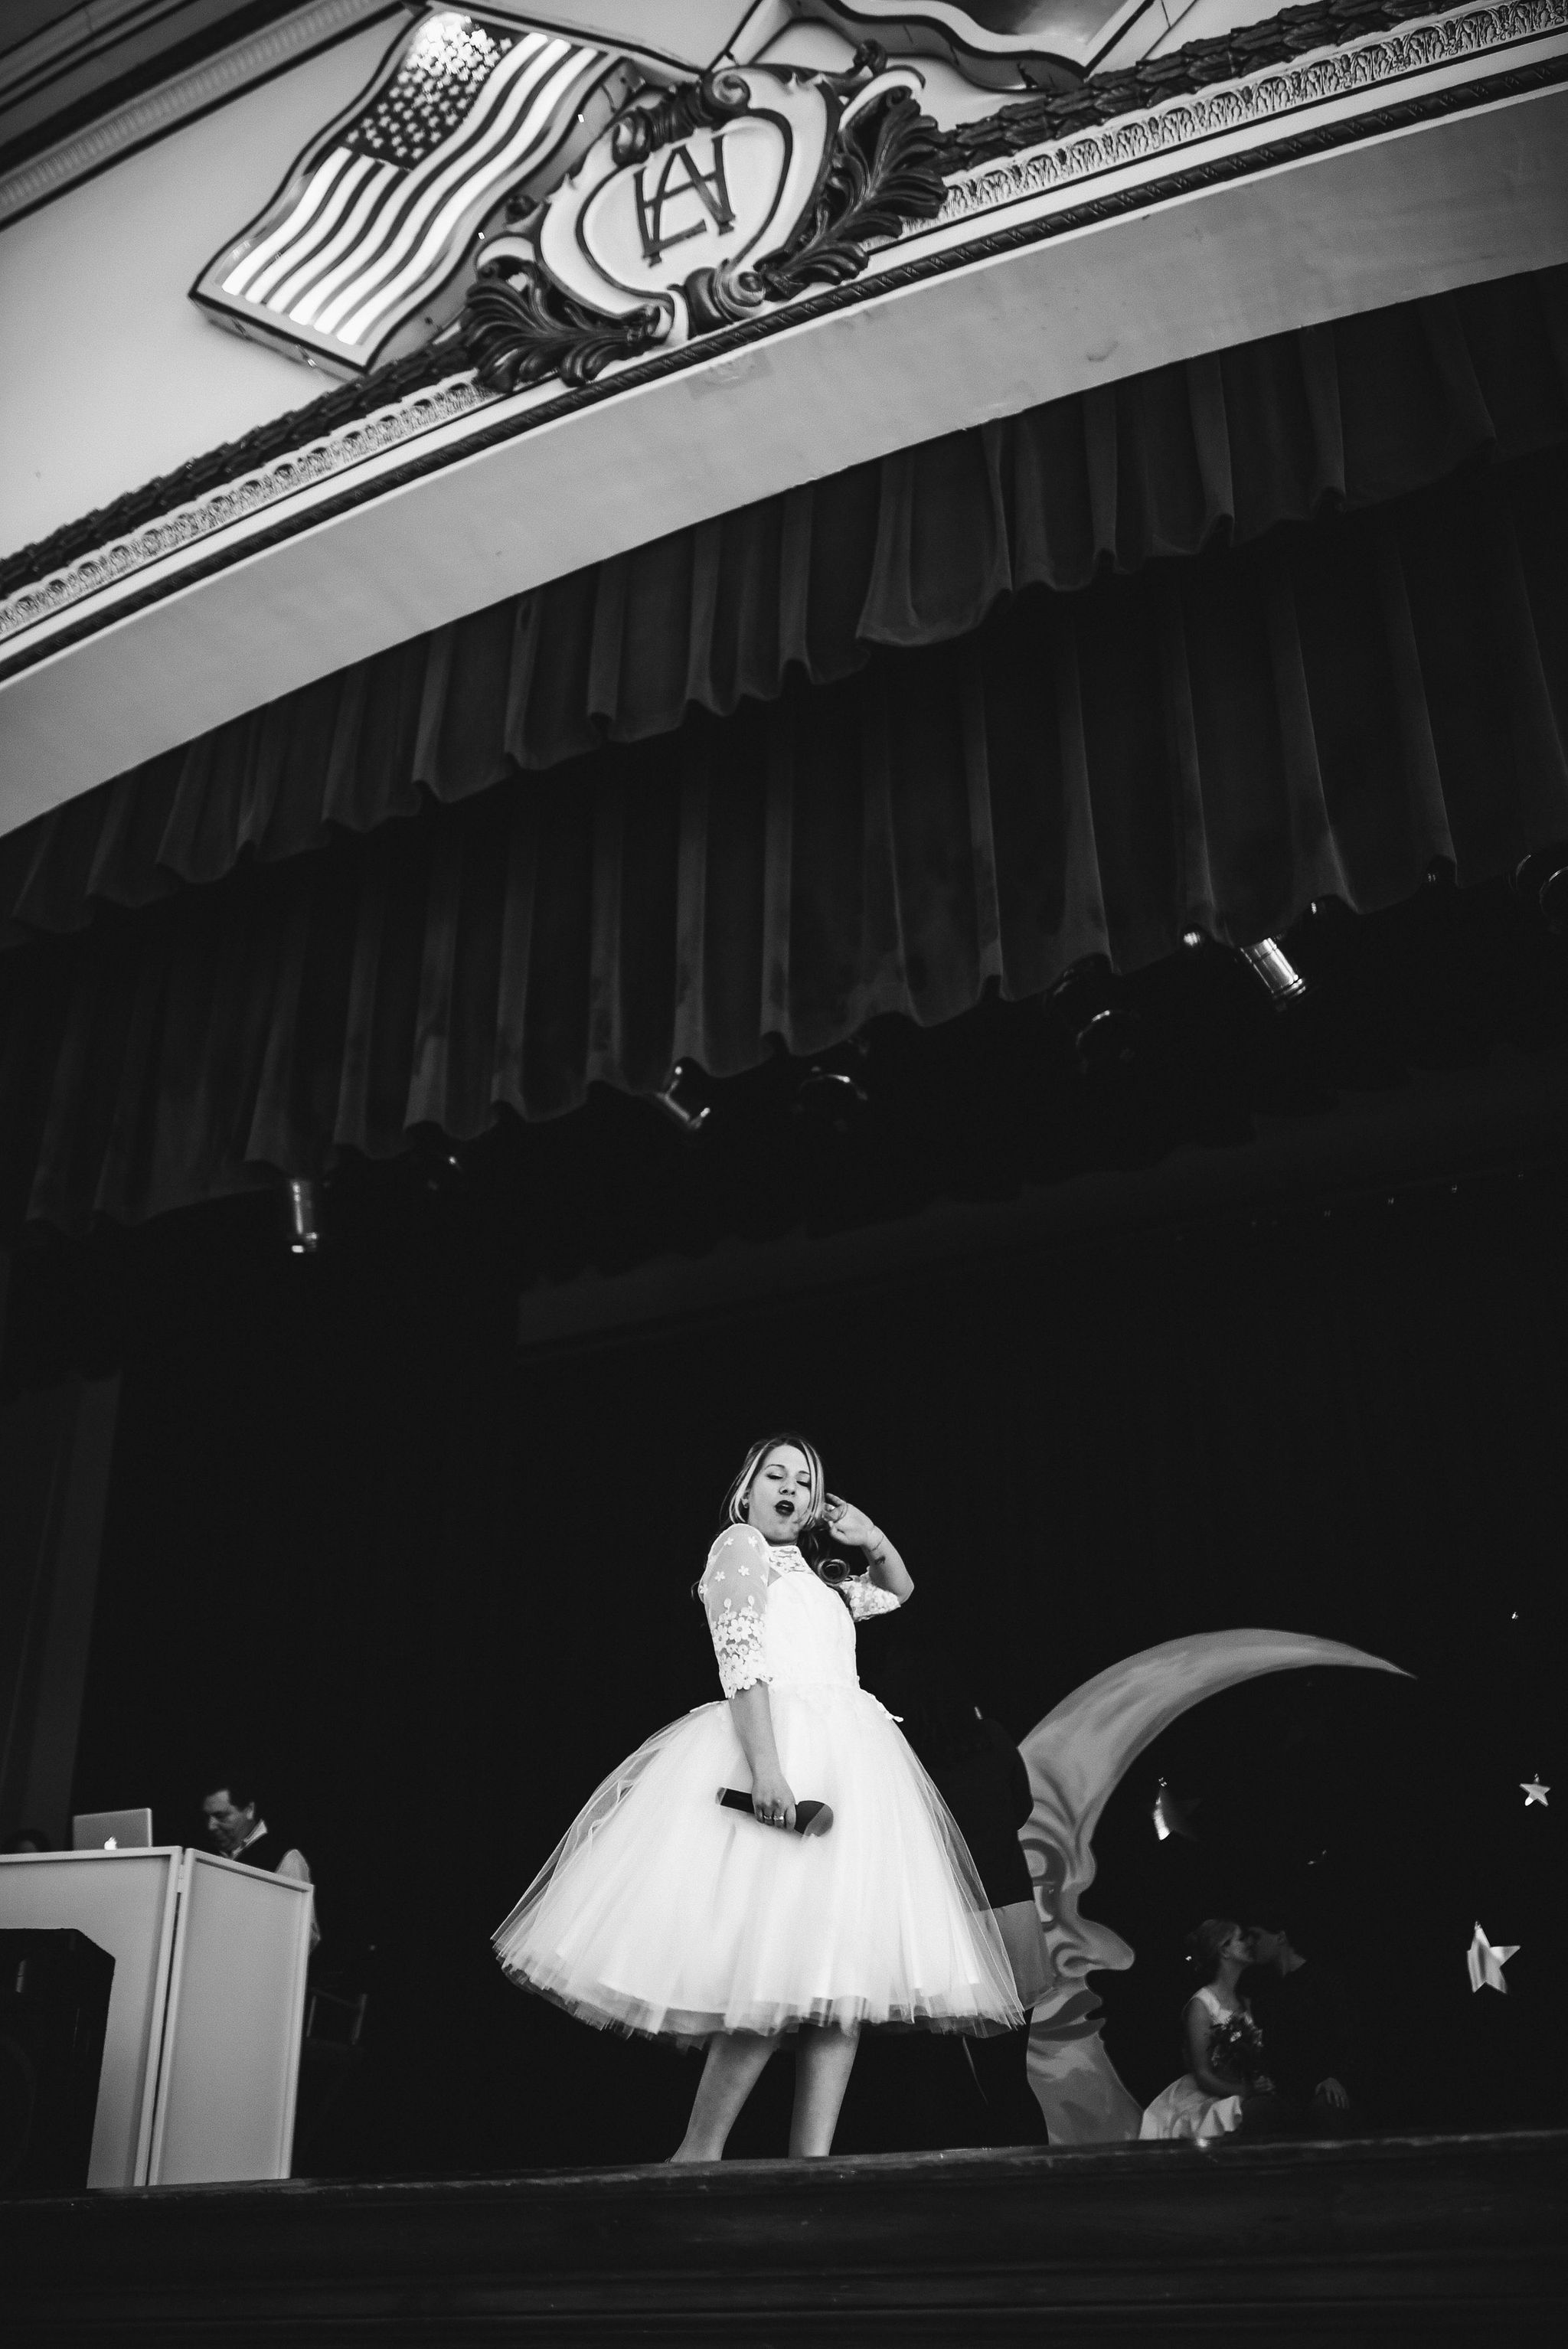 Baltimore, Lithuanian Dance Hall, Maryland Wedding Photographer, Vintage, Classic, 50s Style, Wedding Reception, Bride Posing on Stage, Black and White Photo